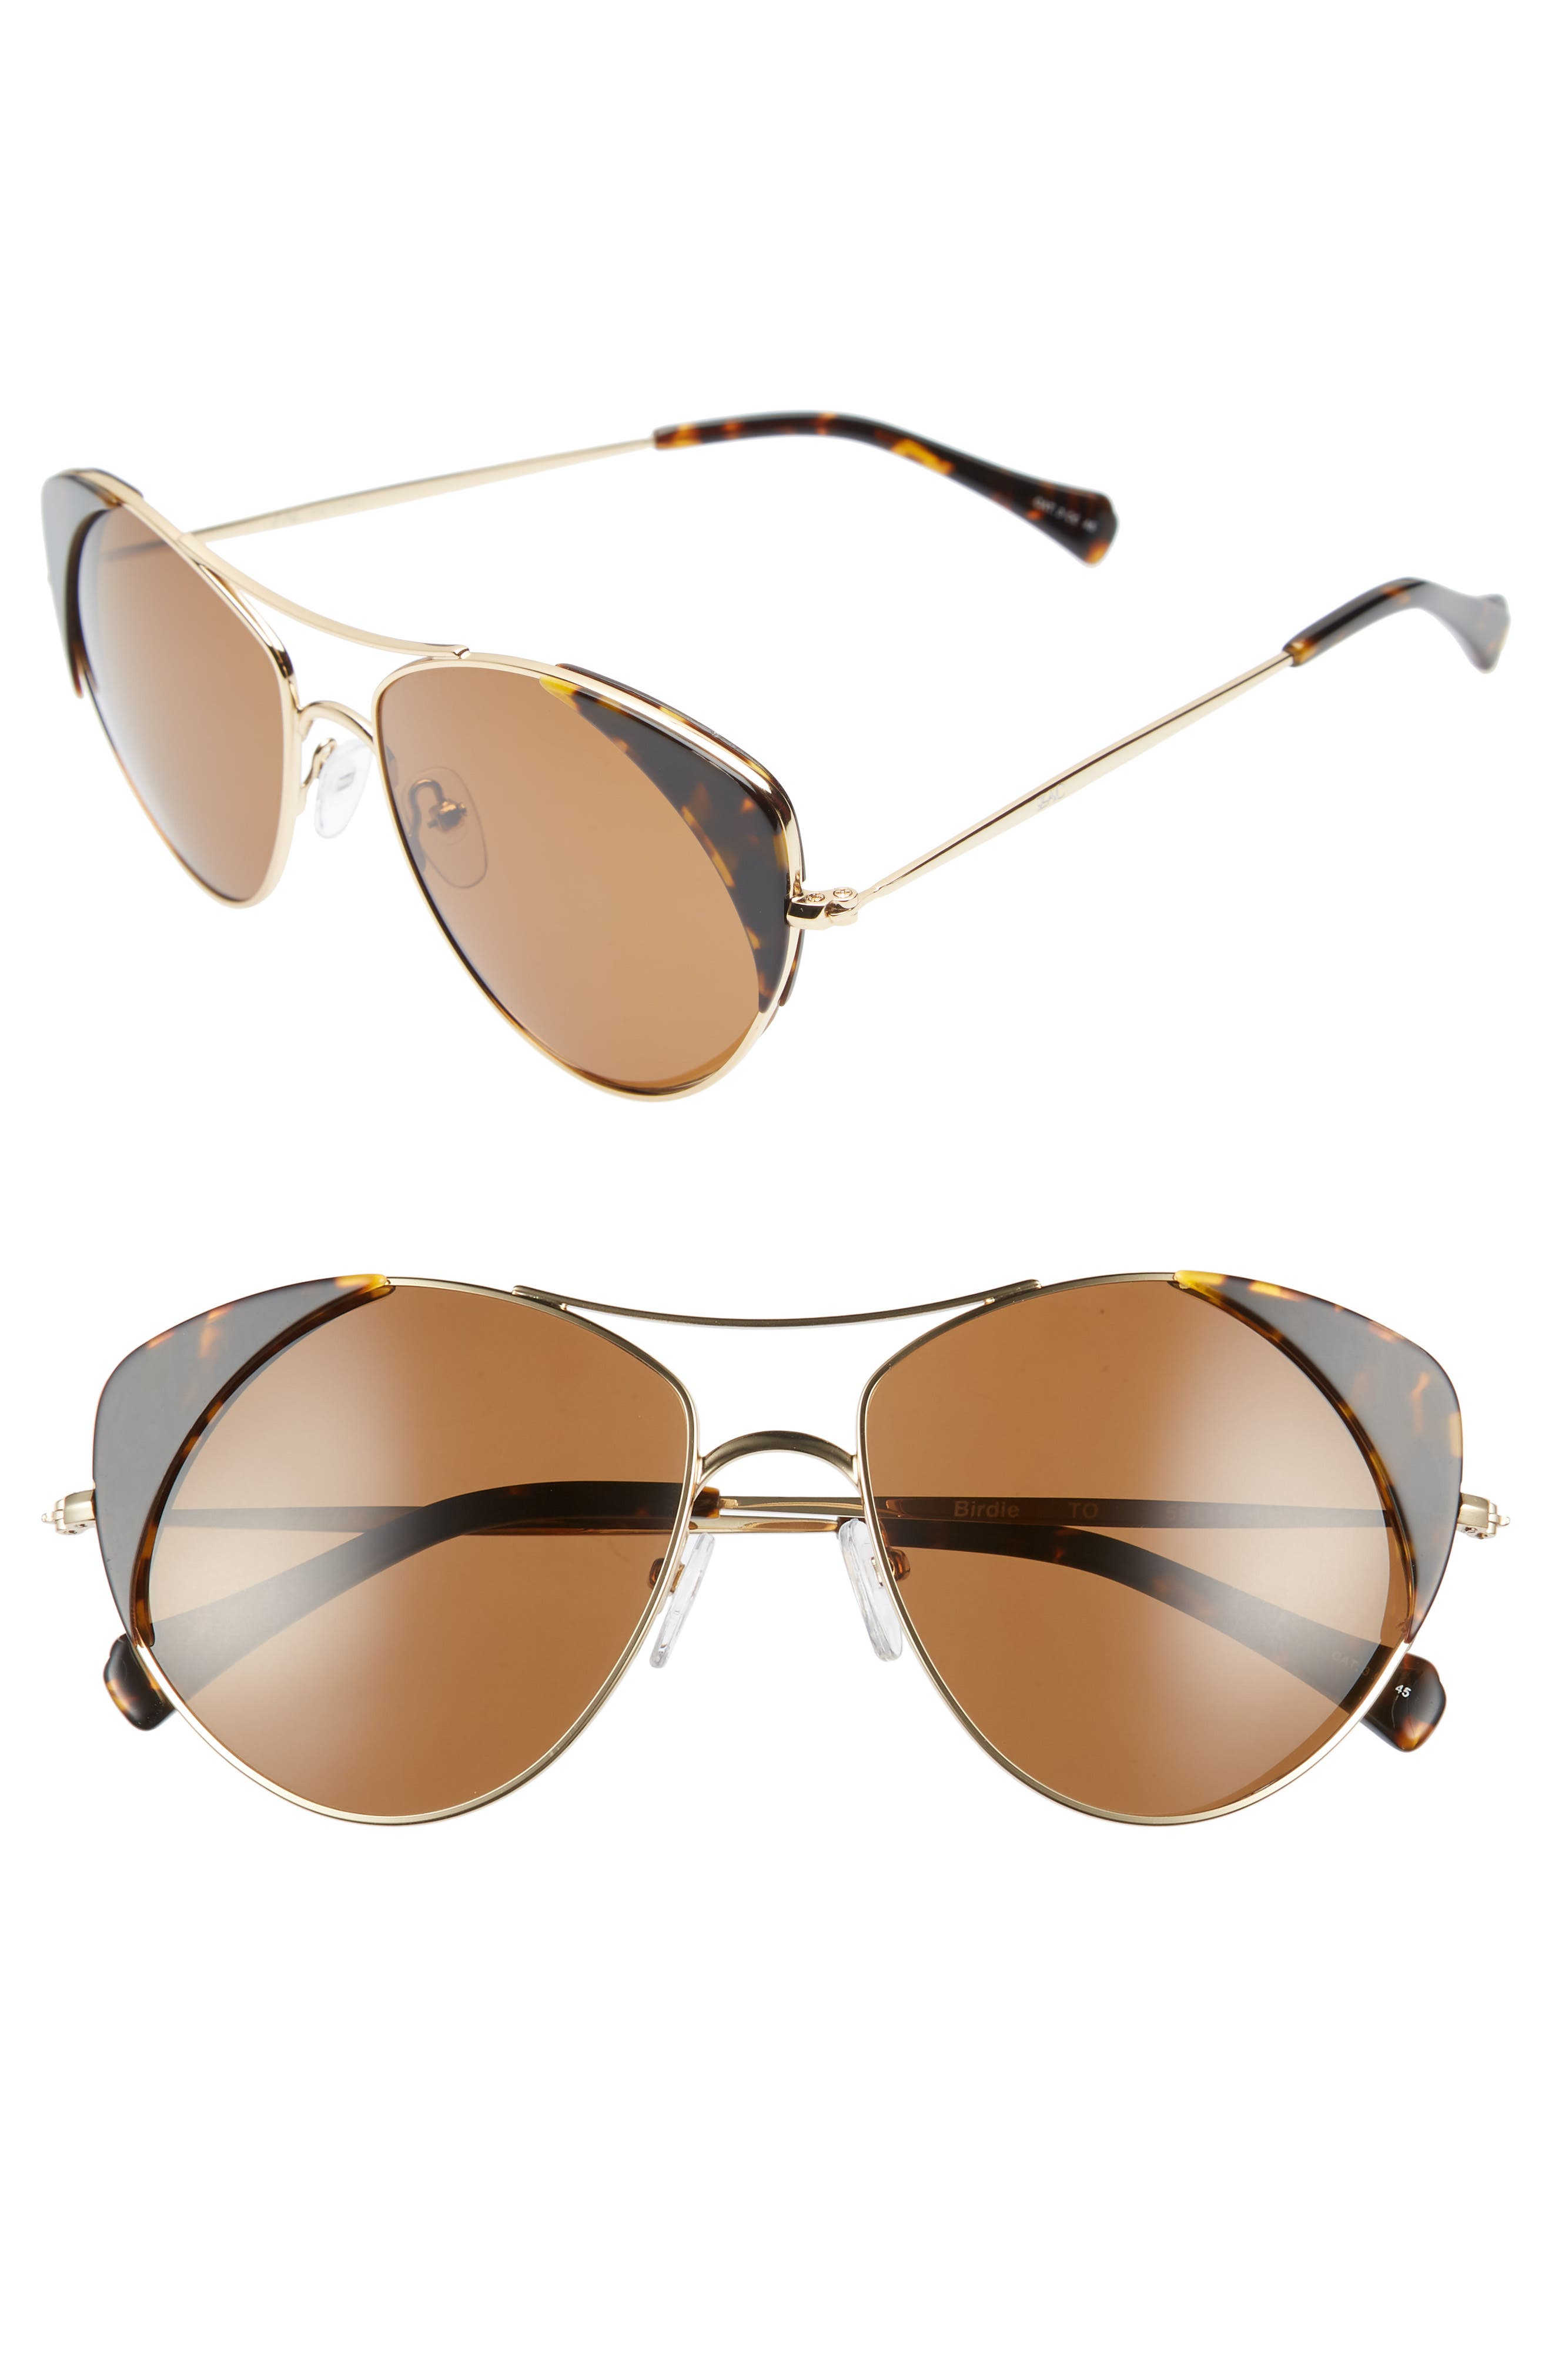 Birdie 59mm Polarized Aviator Sunglasses,                         Main,                         color, TORTOISE POLAR/ BROWN